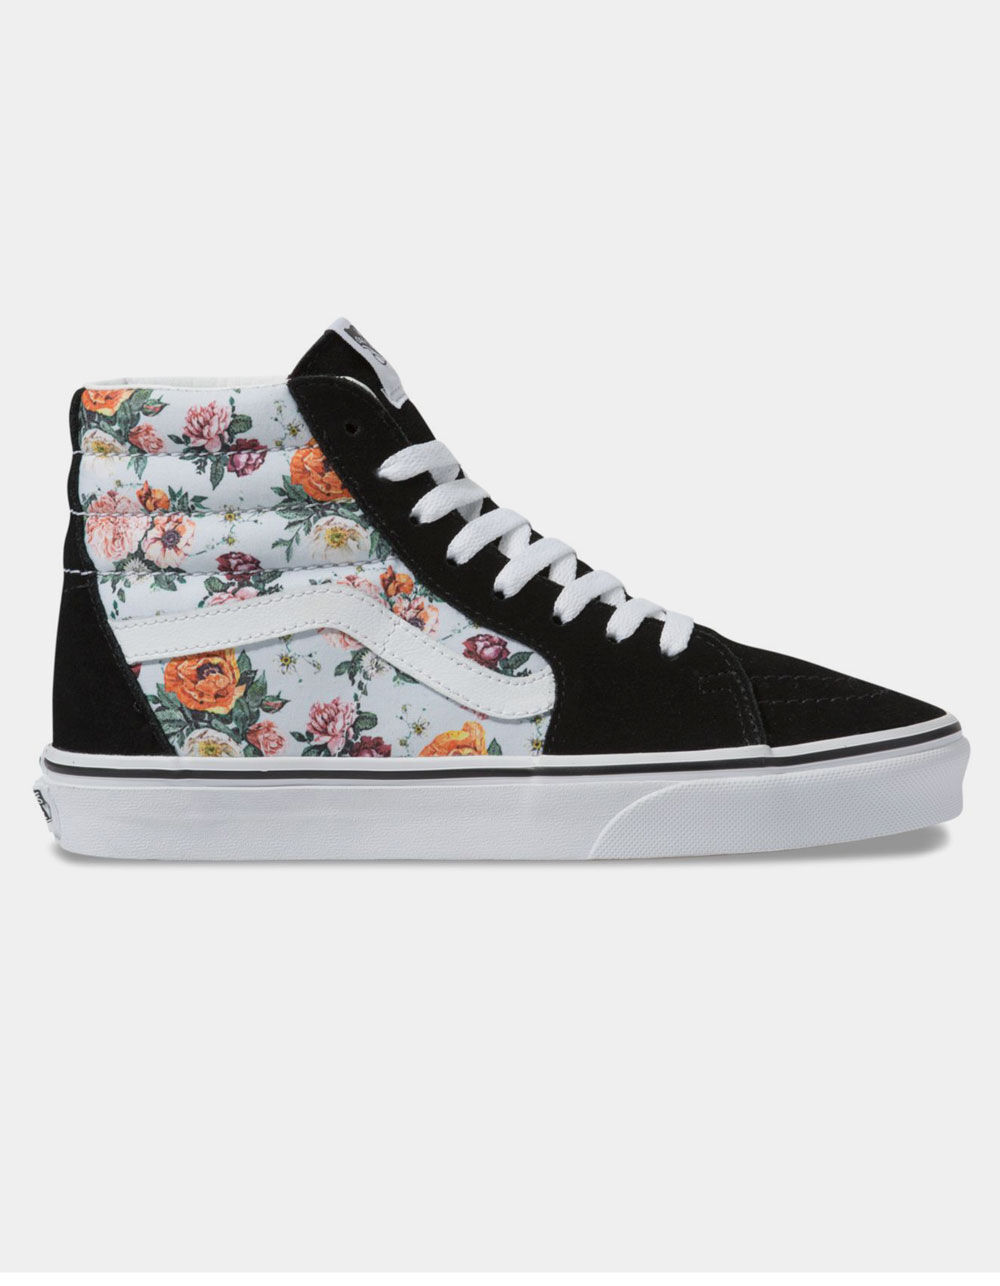 VANS Garden Floral Sk8-Hi True White Shoes